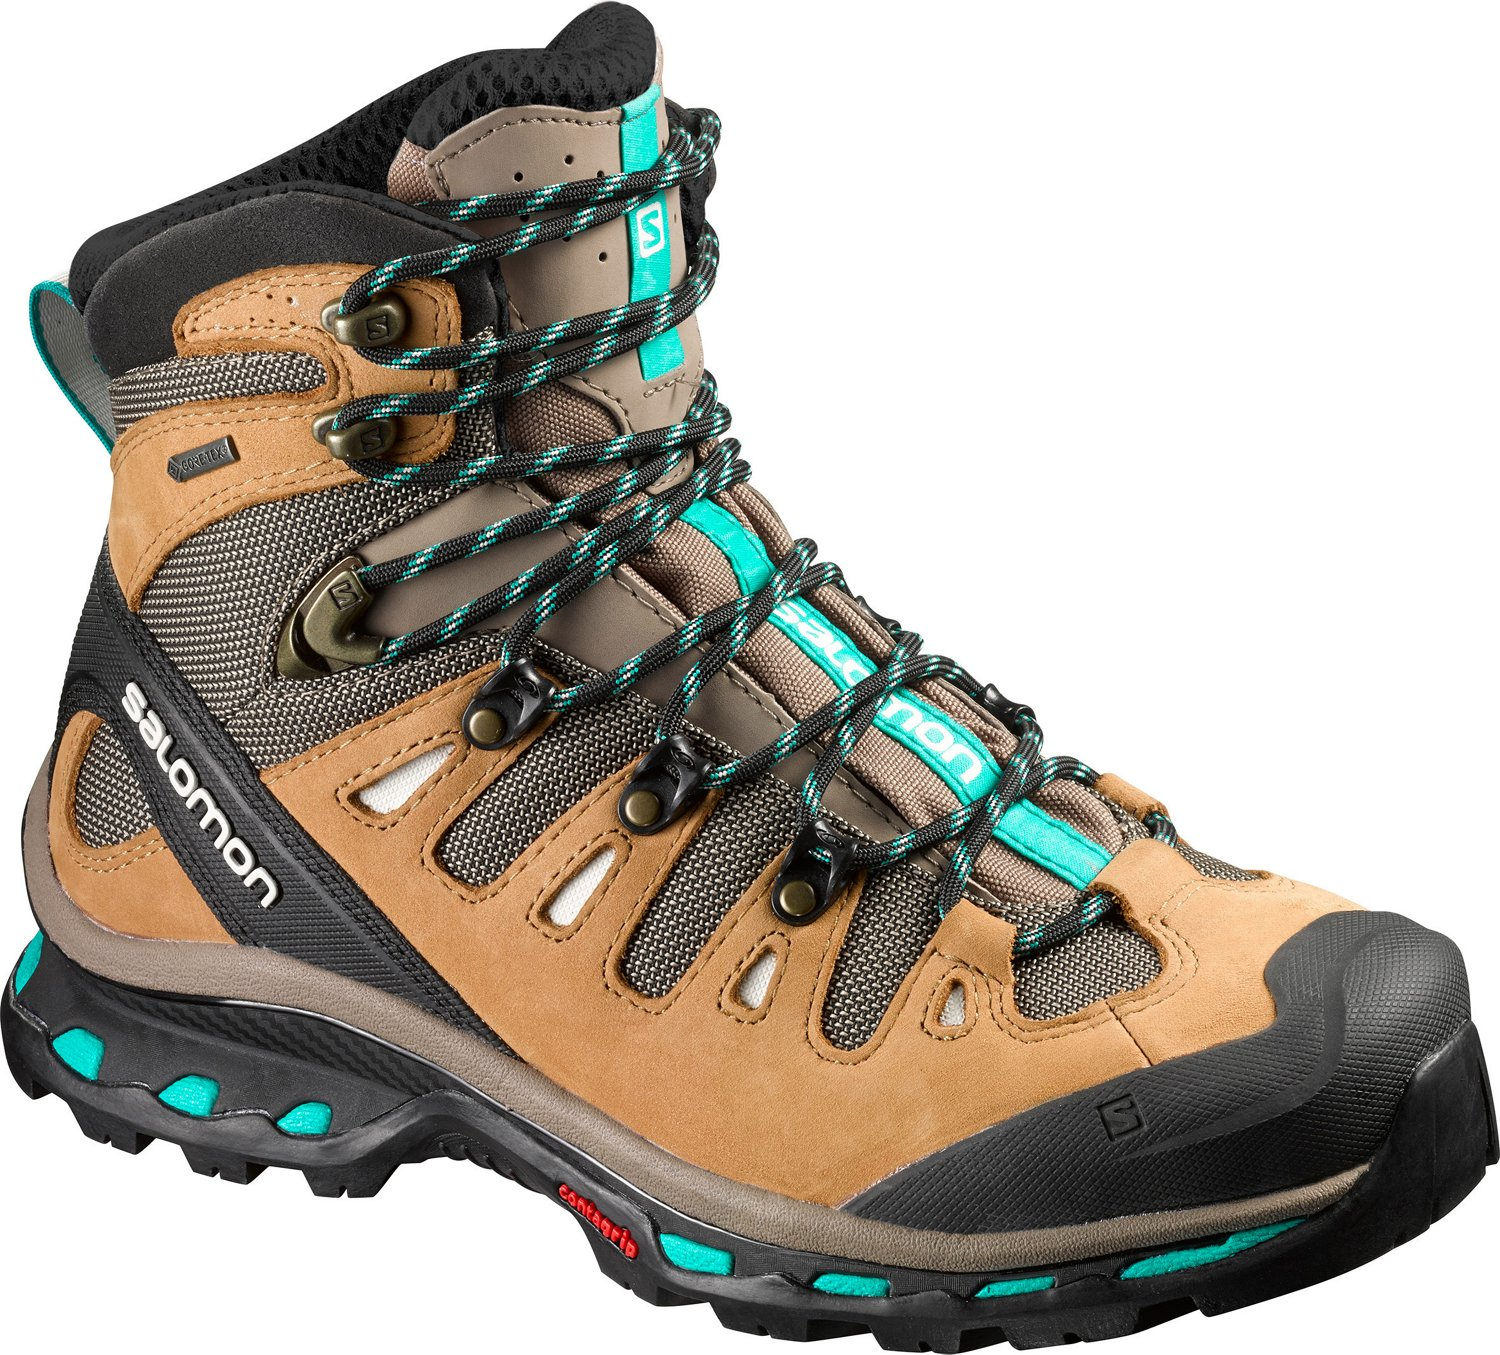 7c59fa34739 Salomon Women's High Quest 4D 2 GTX Hiking Shoes